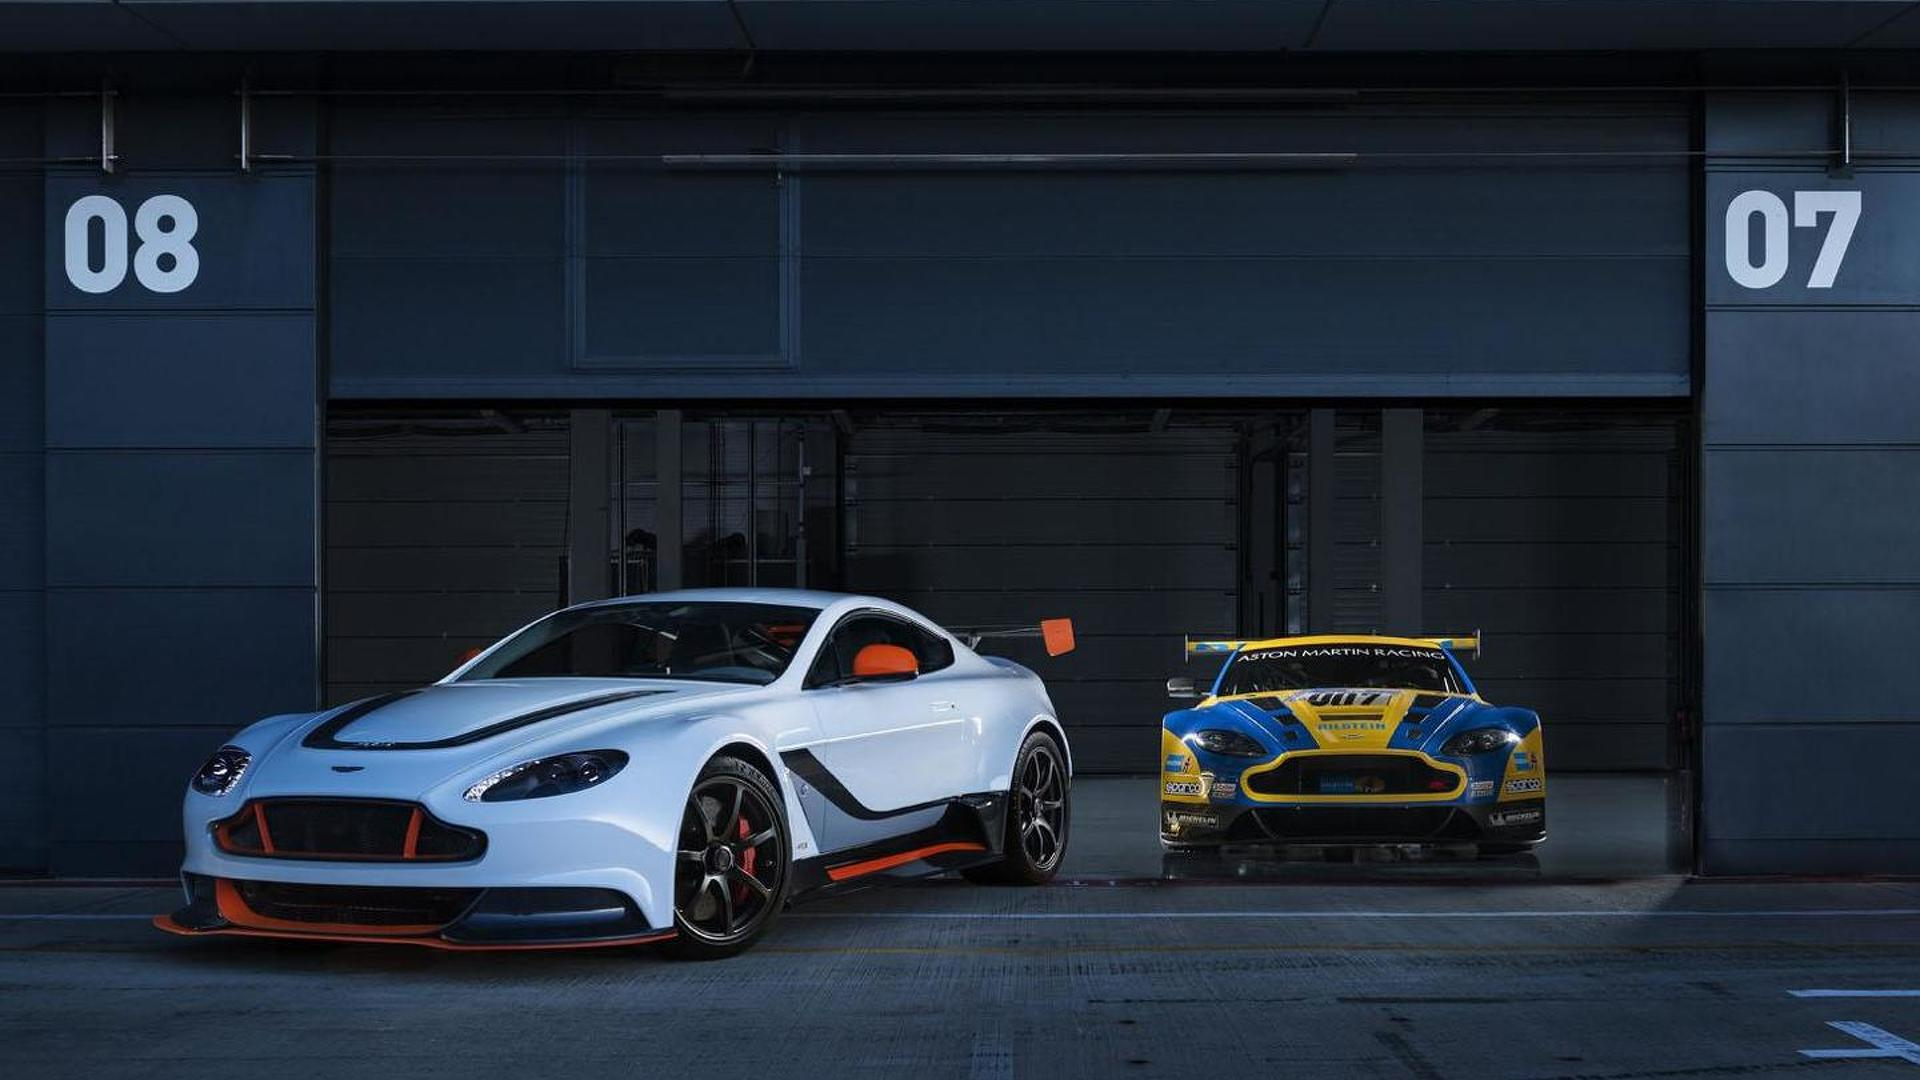 Aston Martin Vantage Gt3 To Be Renamed Over Porsche S Objections